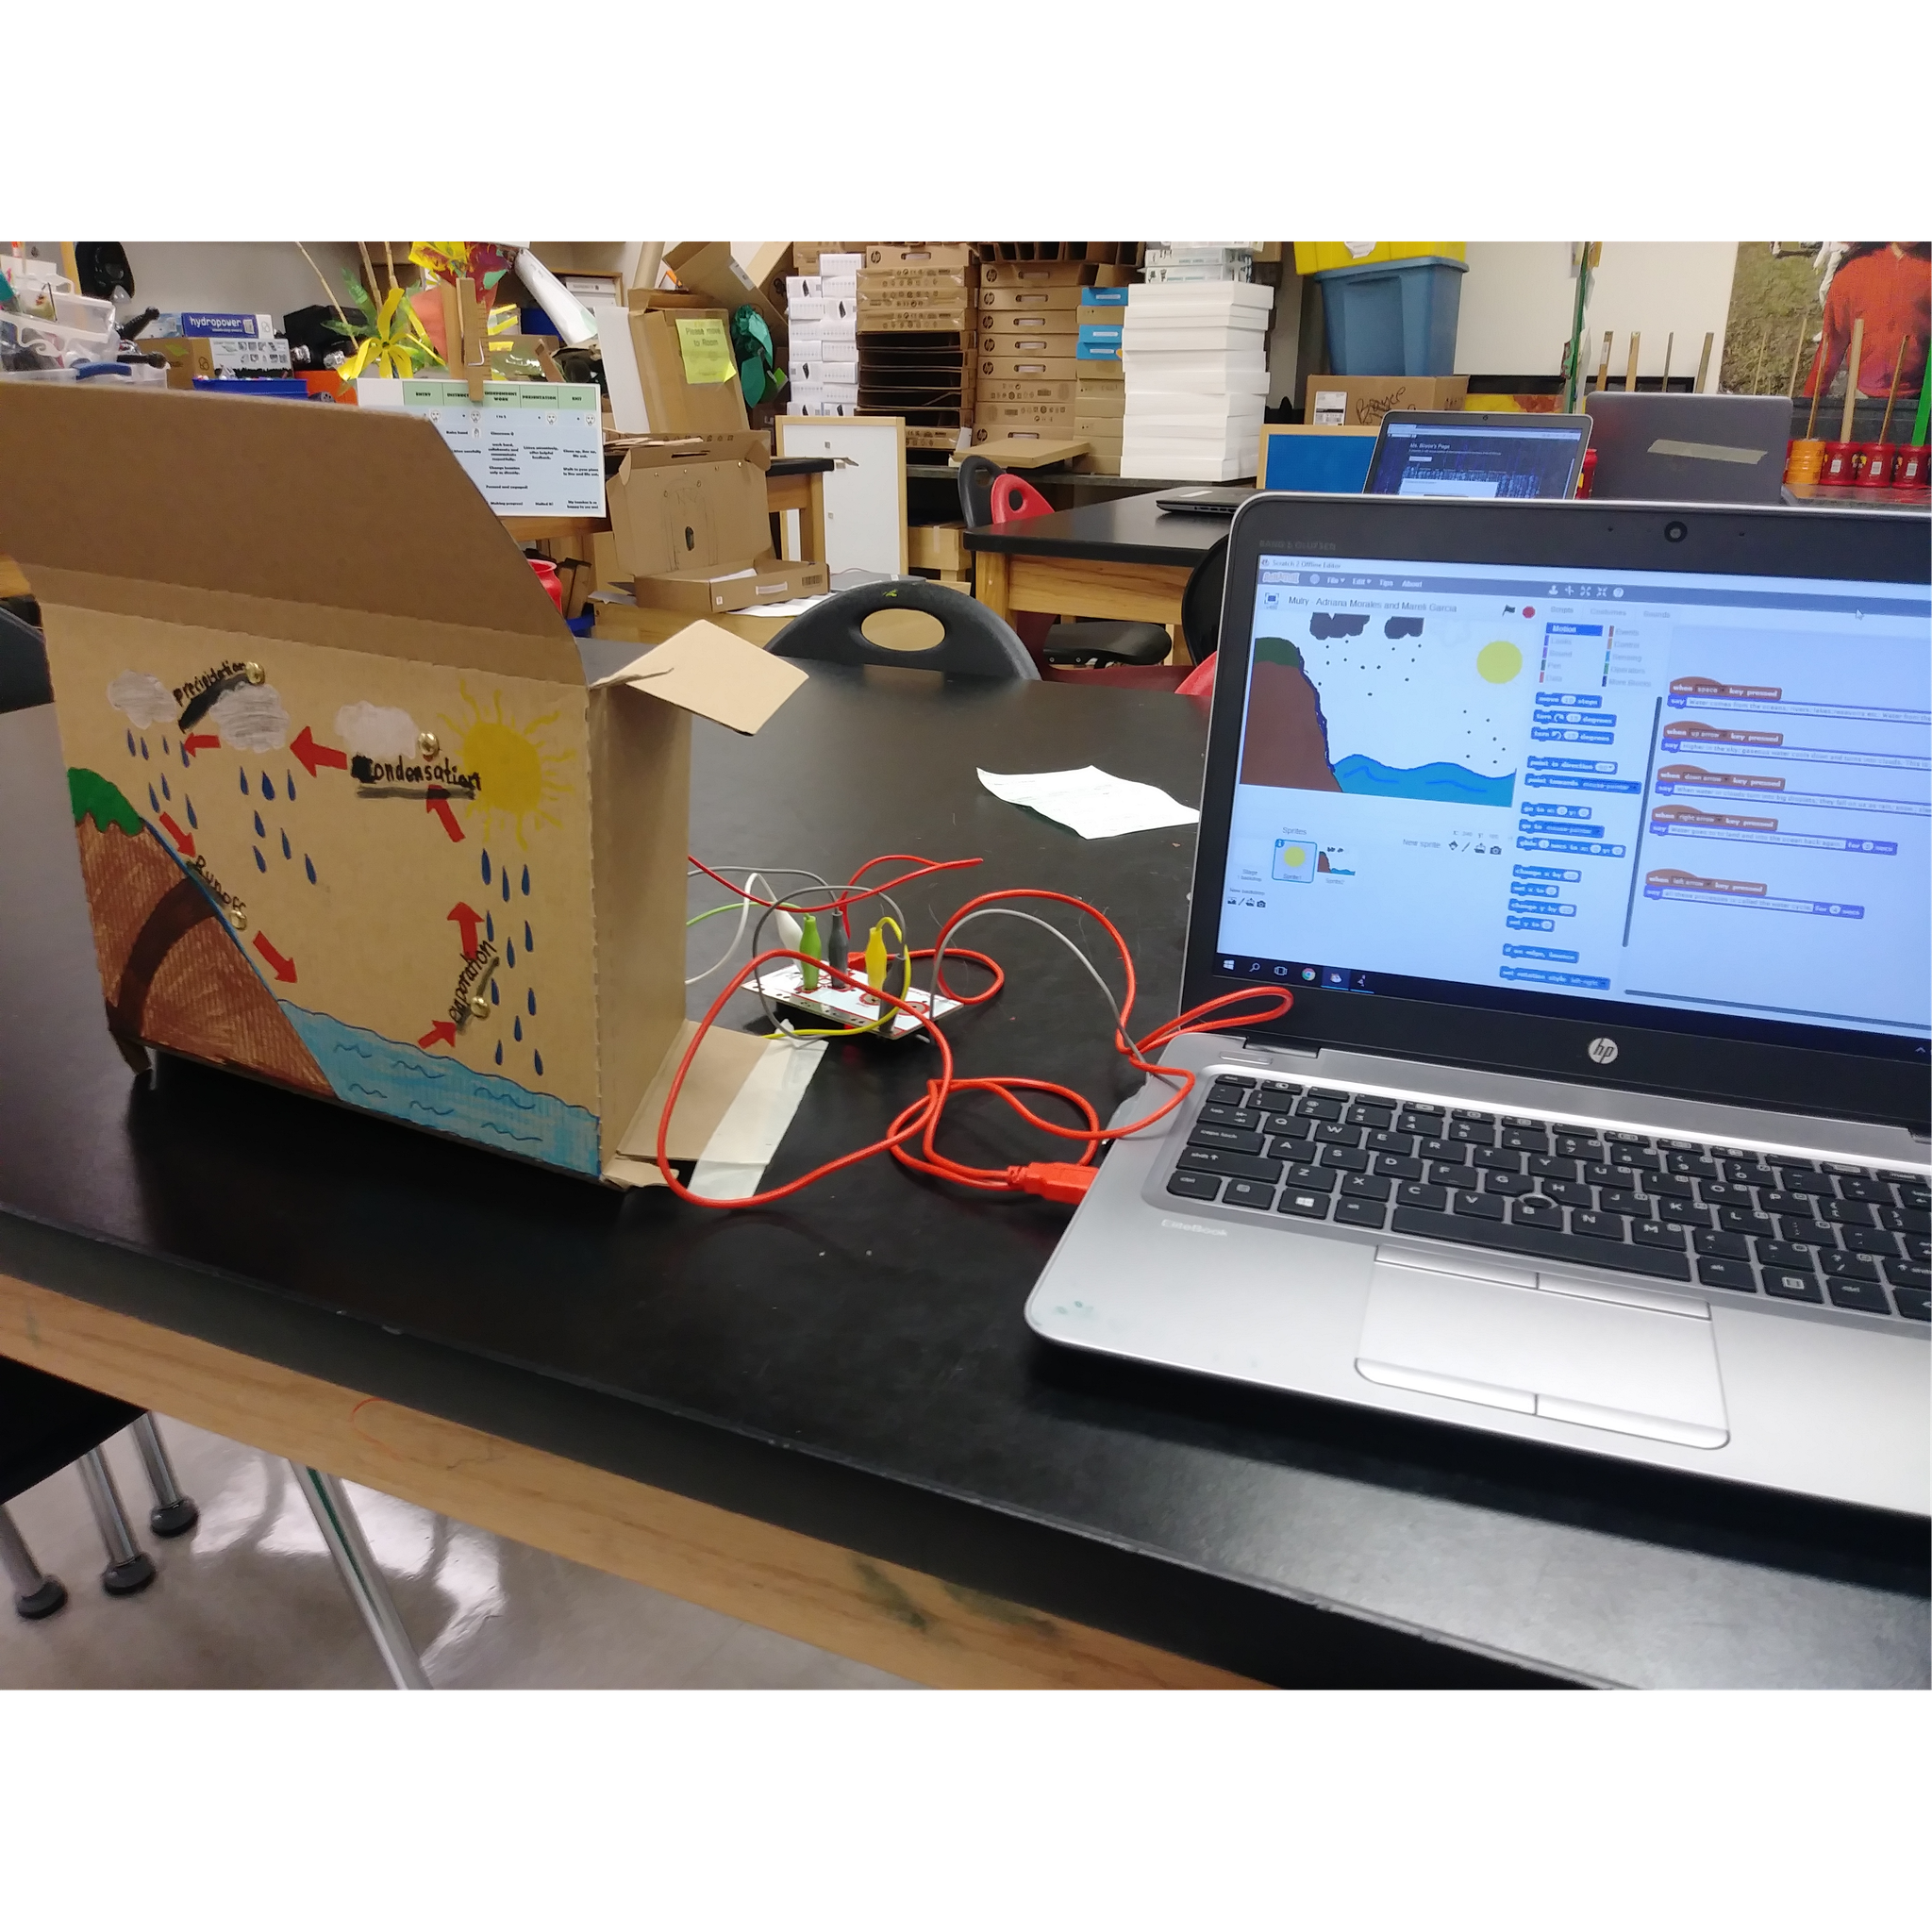 Pin On Makey Makey Interactive Posters